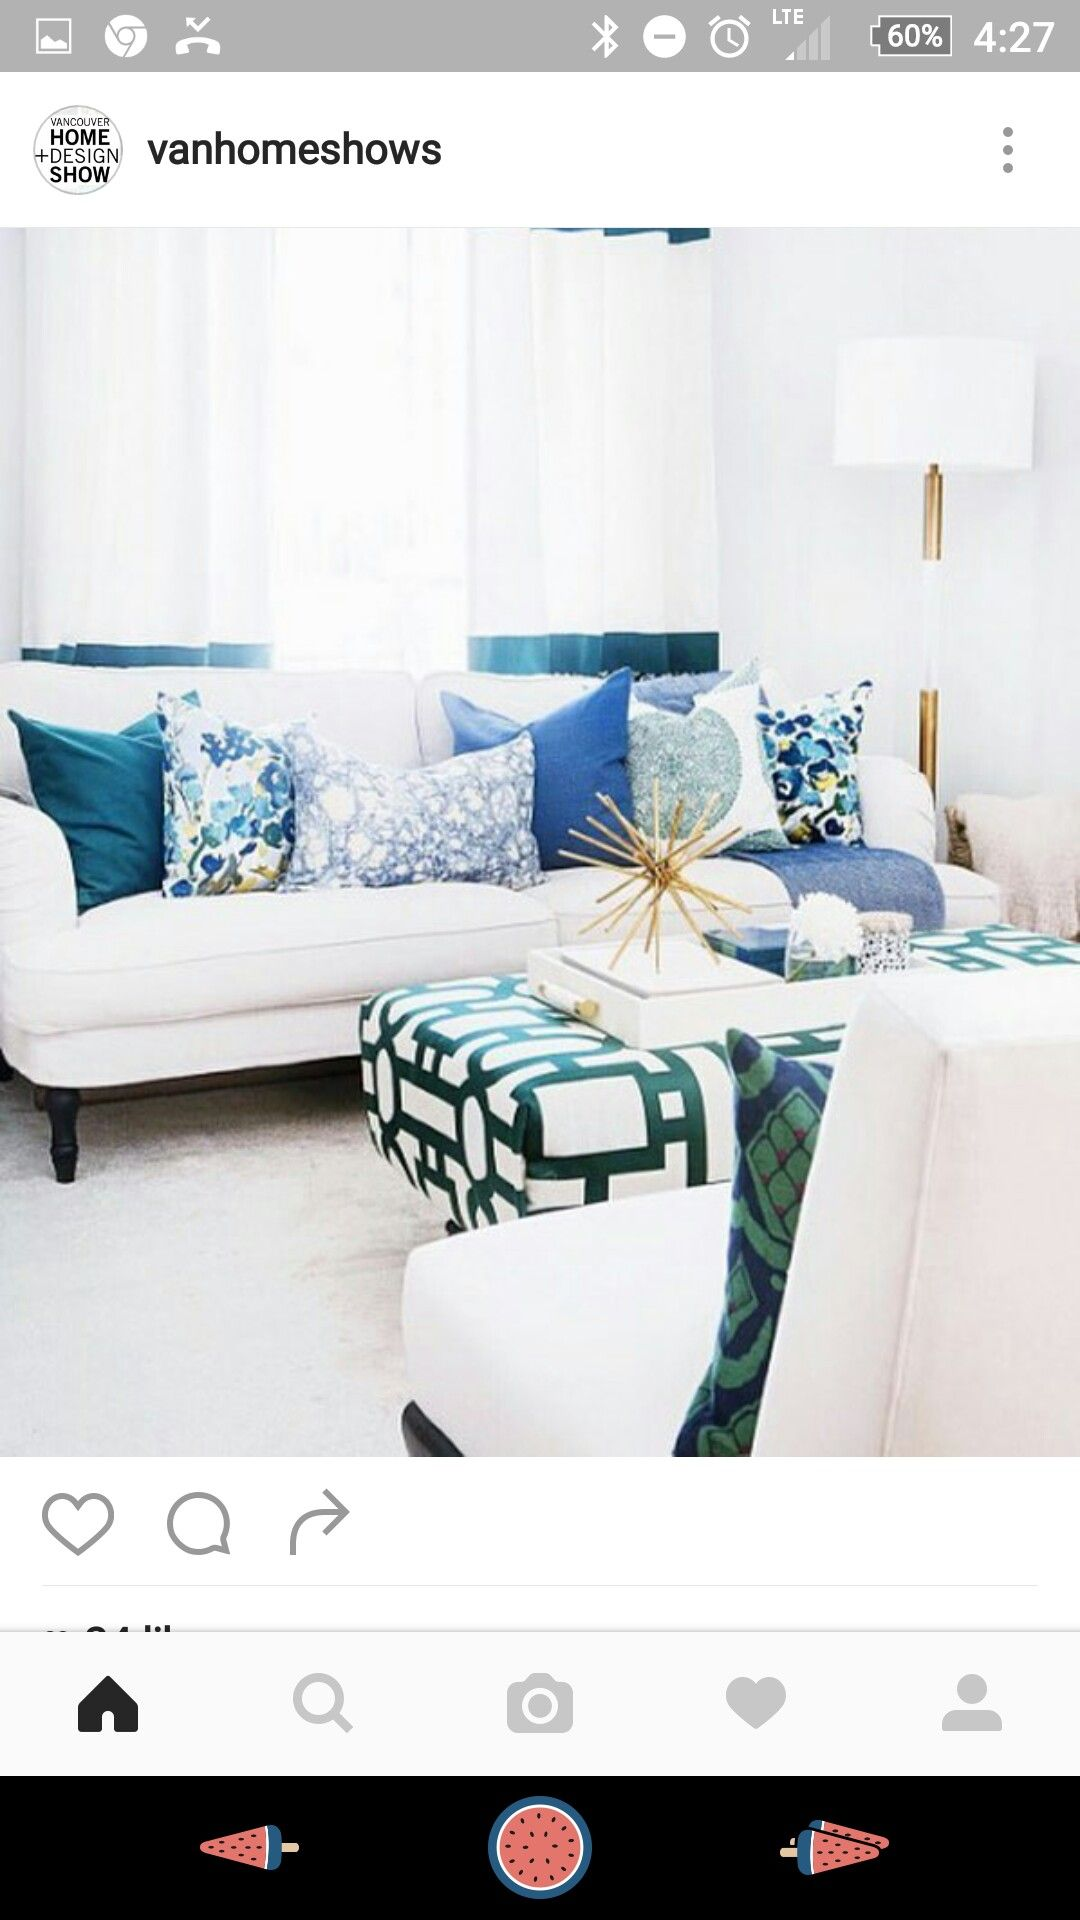 Pin by Laura Chang on new house decorating ideas Pinterest